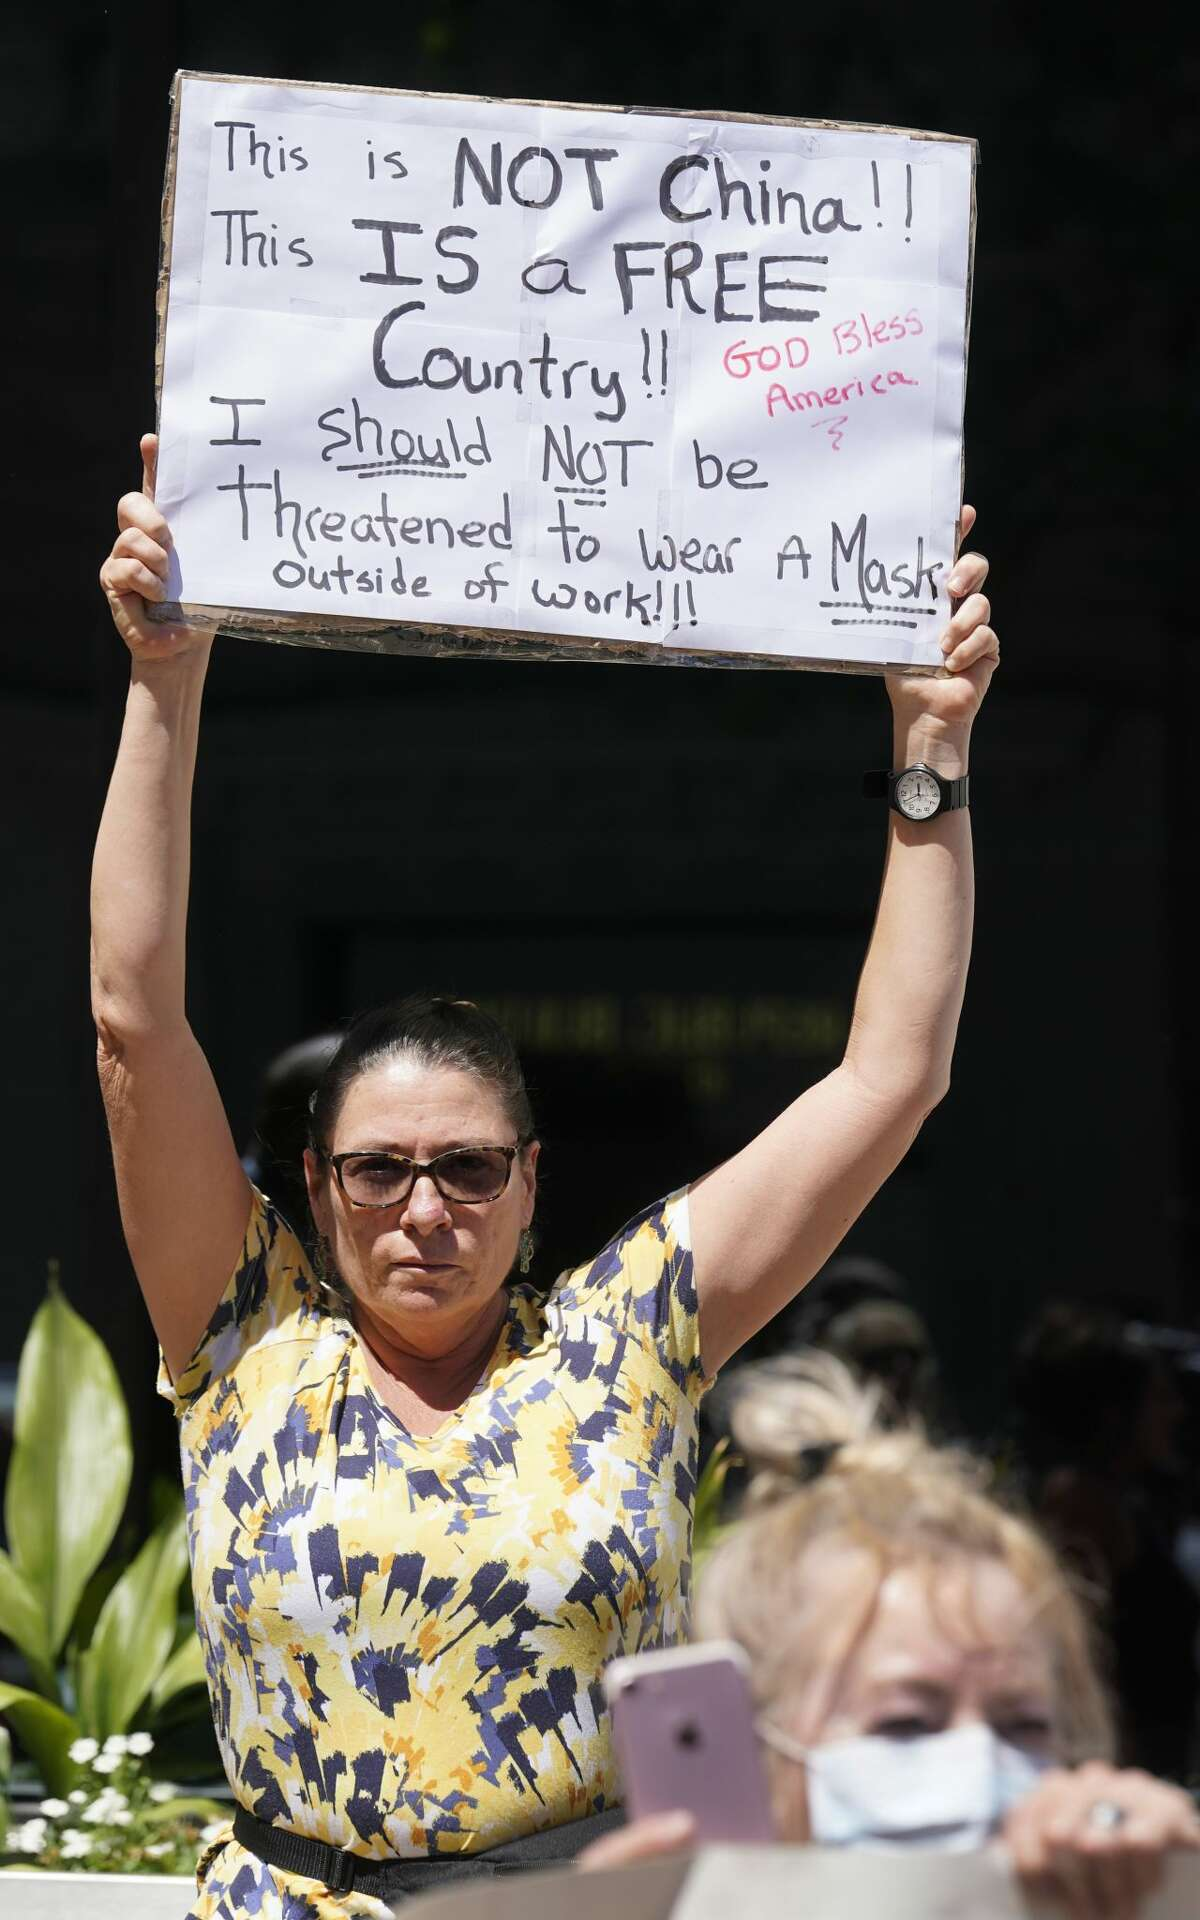 People protest outside the Harris County offices, 1001 Preston, Thursday, April 23, 2020 in Houston during a rally organized by Steven Hotze, a Republican activist, against the order to wear masks. Harris County Judge Lina Hidalgo ordered residents to cover their nose and mouth while in public effective Monday for 30 days amid the Covid-19 pandemic.